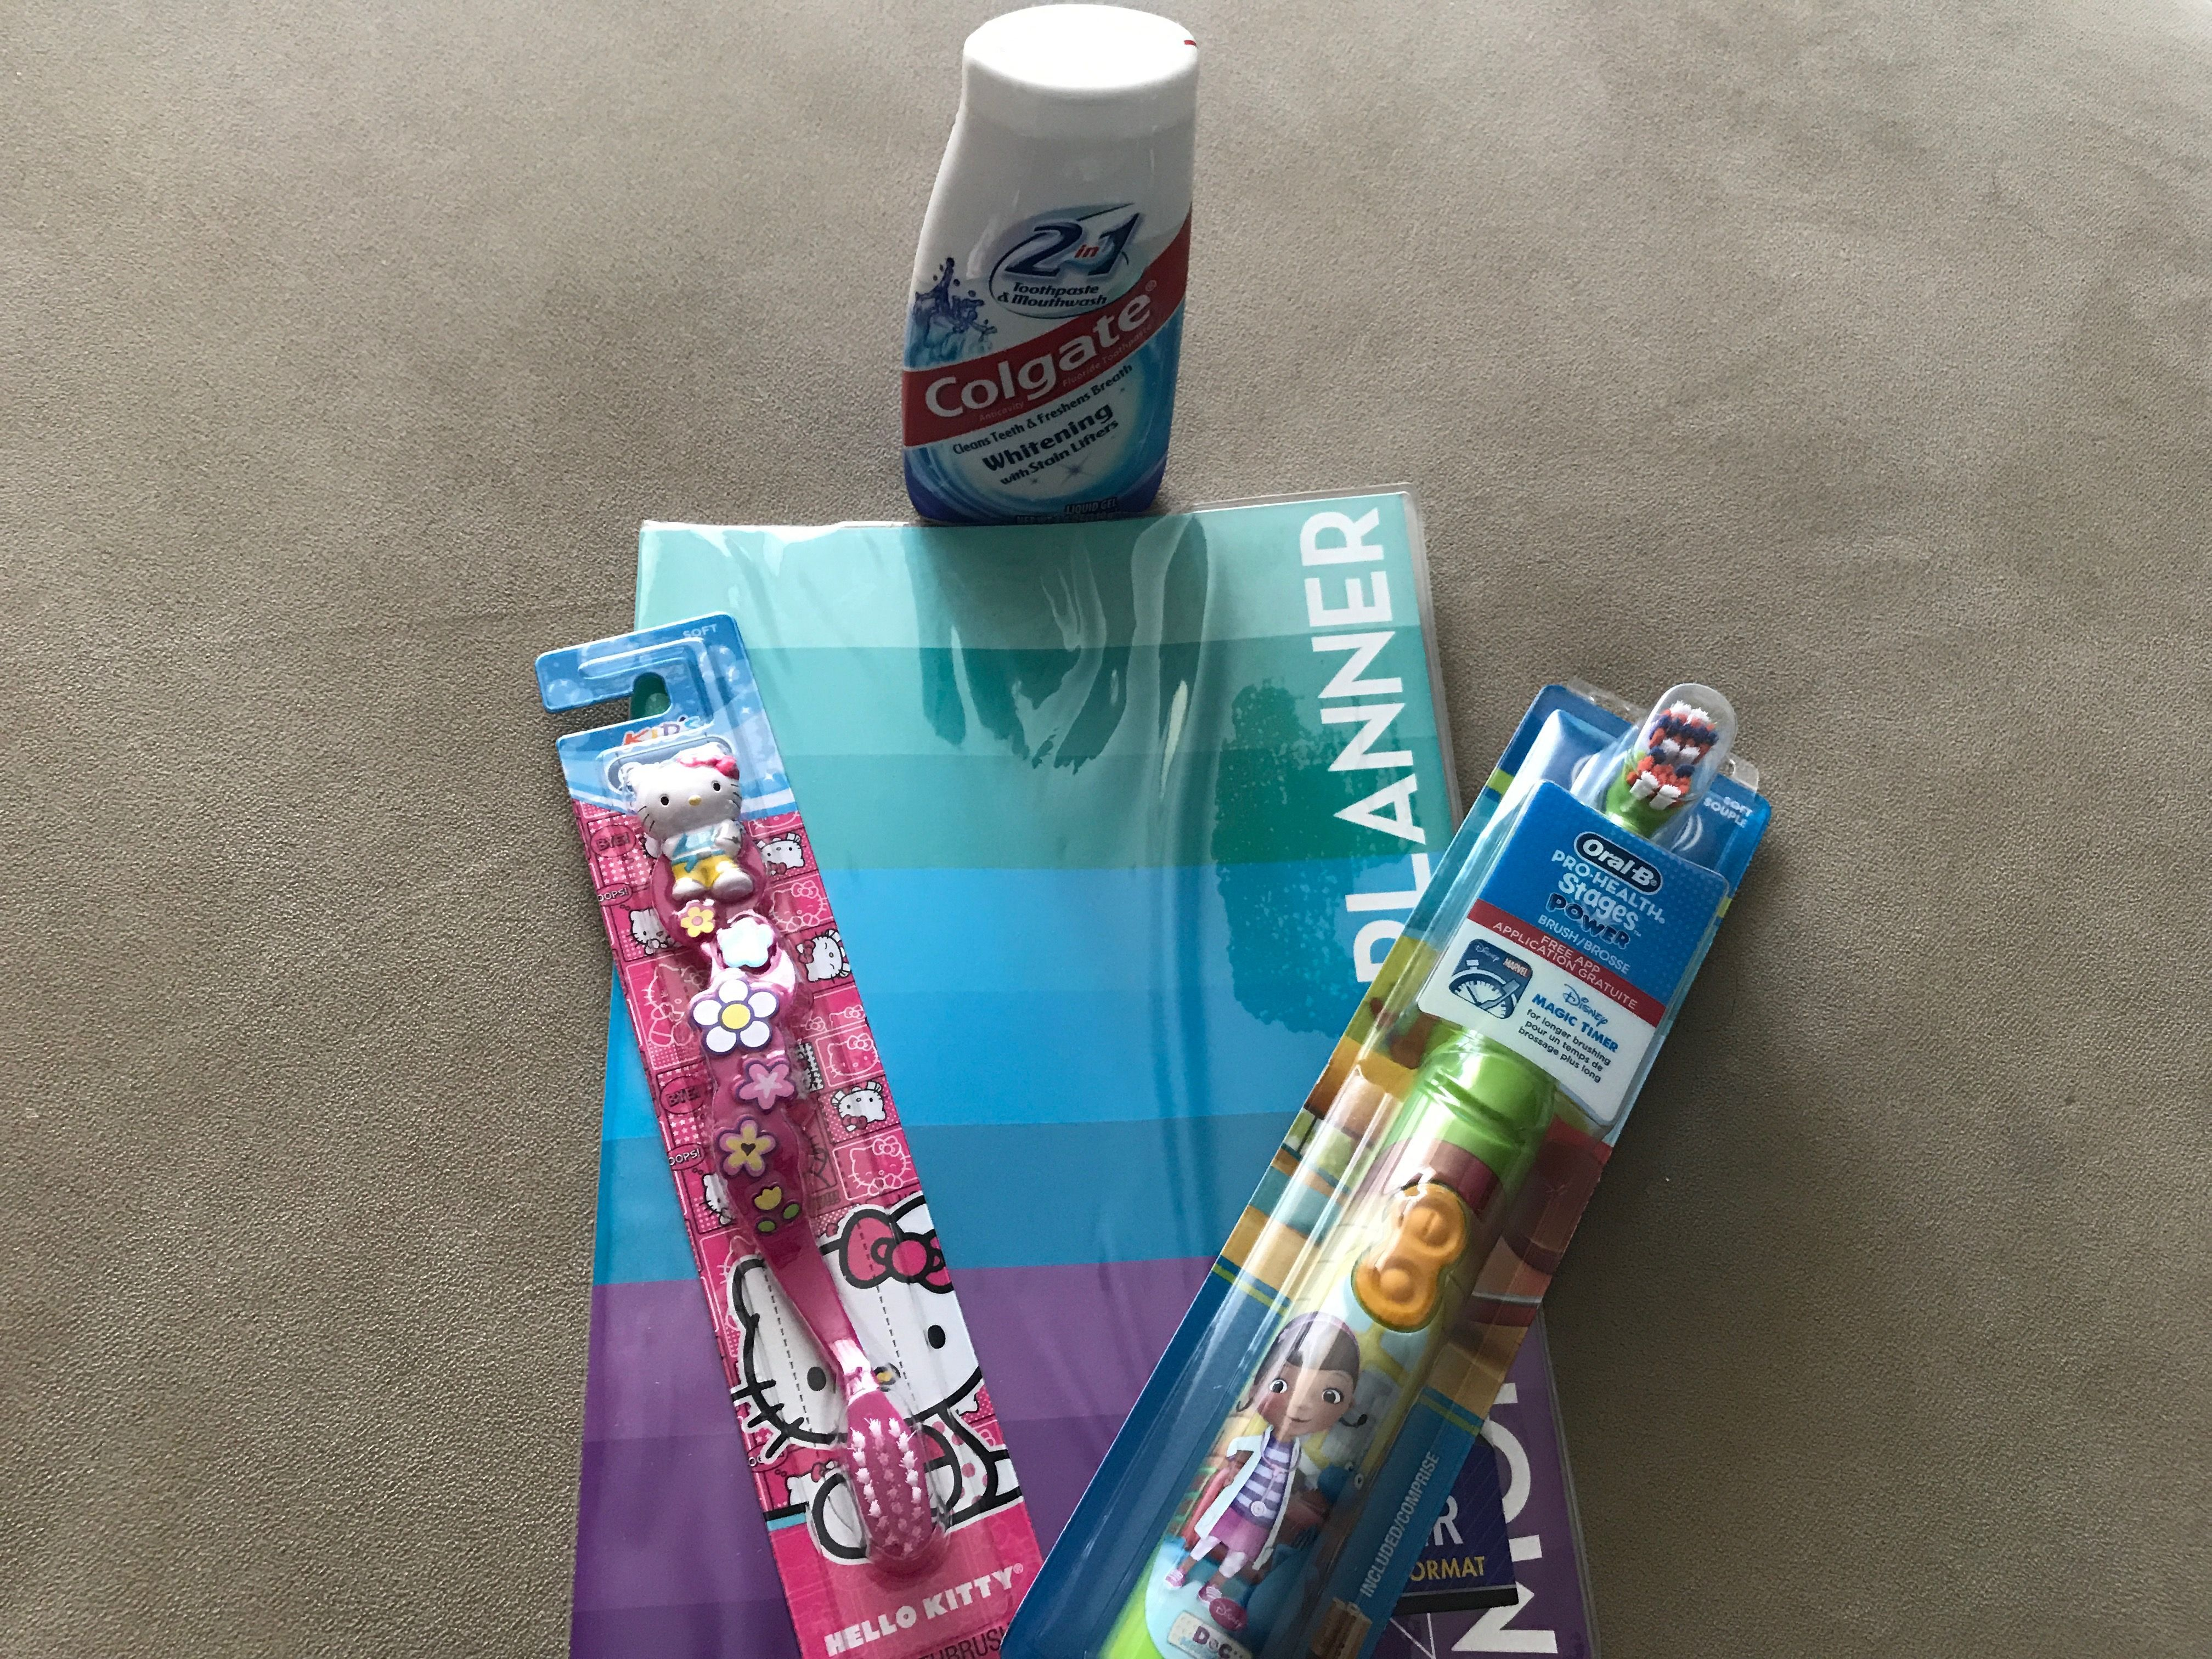 Dollar Tree: 1 oral b hello kitty toothbrush, 1 oral b doc mcstuffin battery operated toothbrush, 1 colgate toothpaste, 1 2018 planner: used 2 $1 off toothbrush coupons, 0.50 colgate coupon= total $1.80